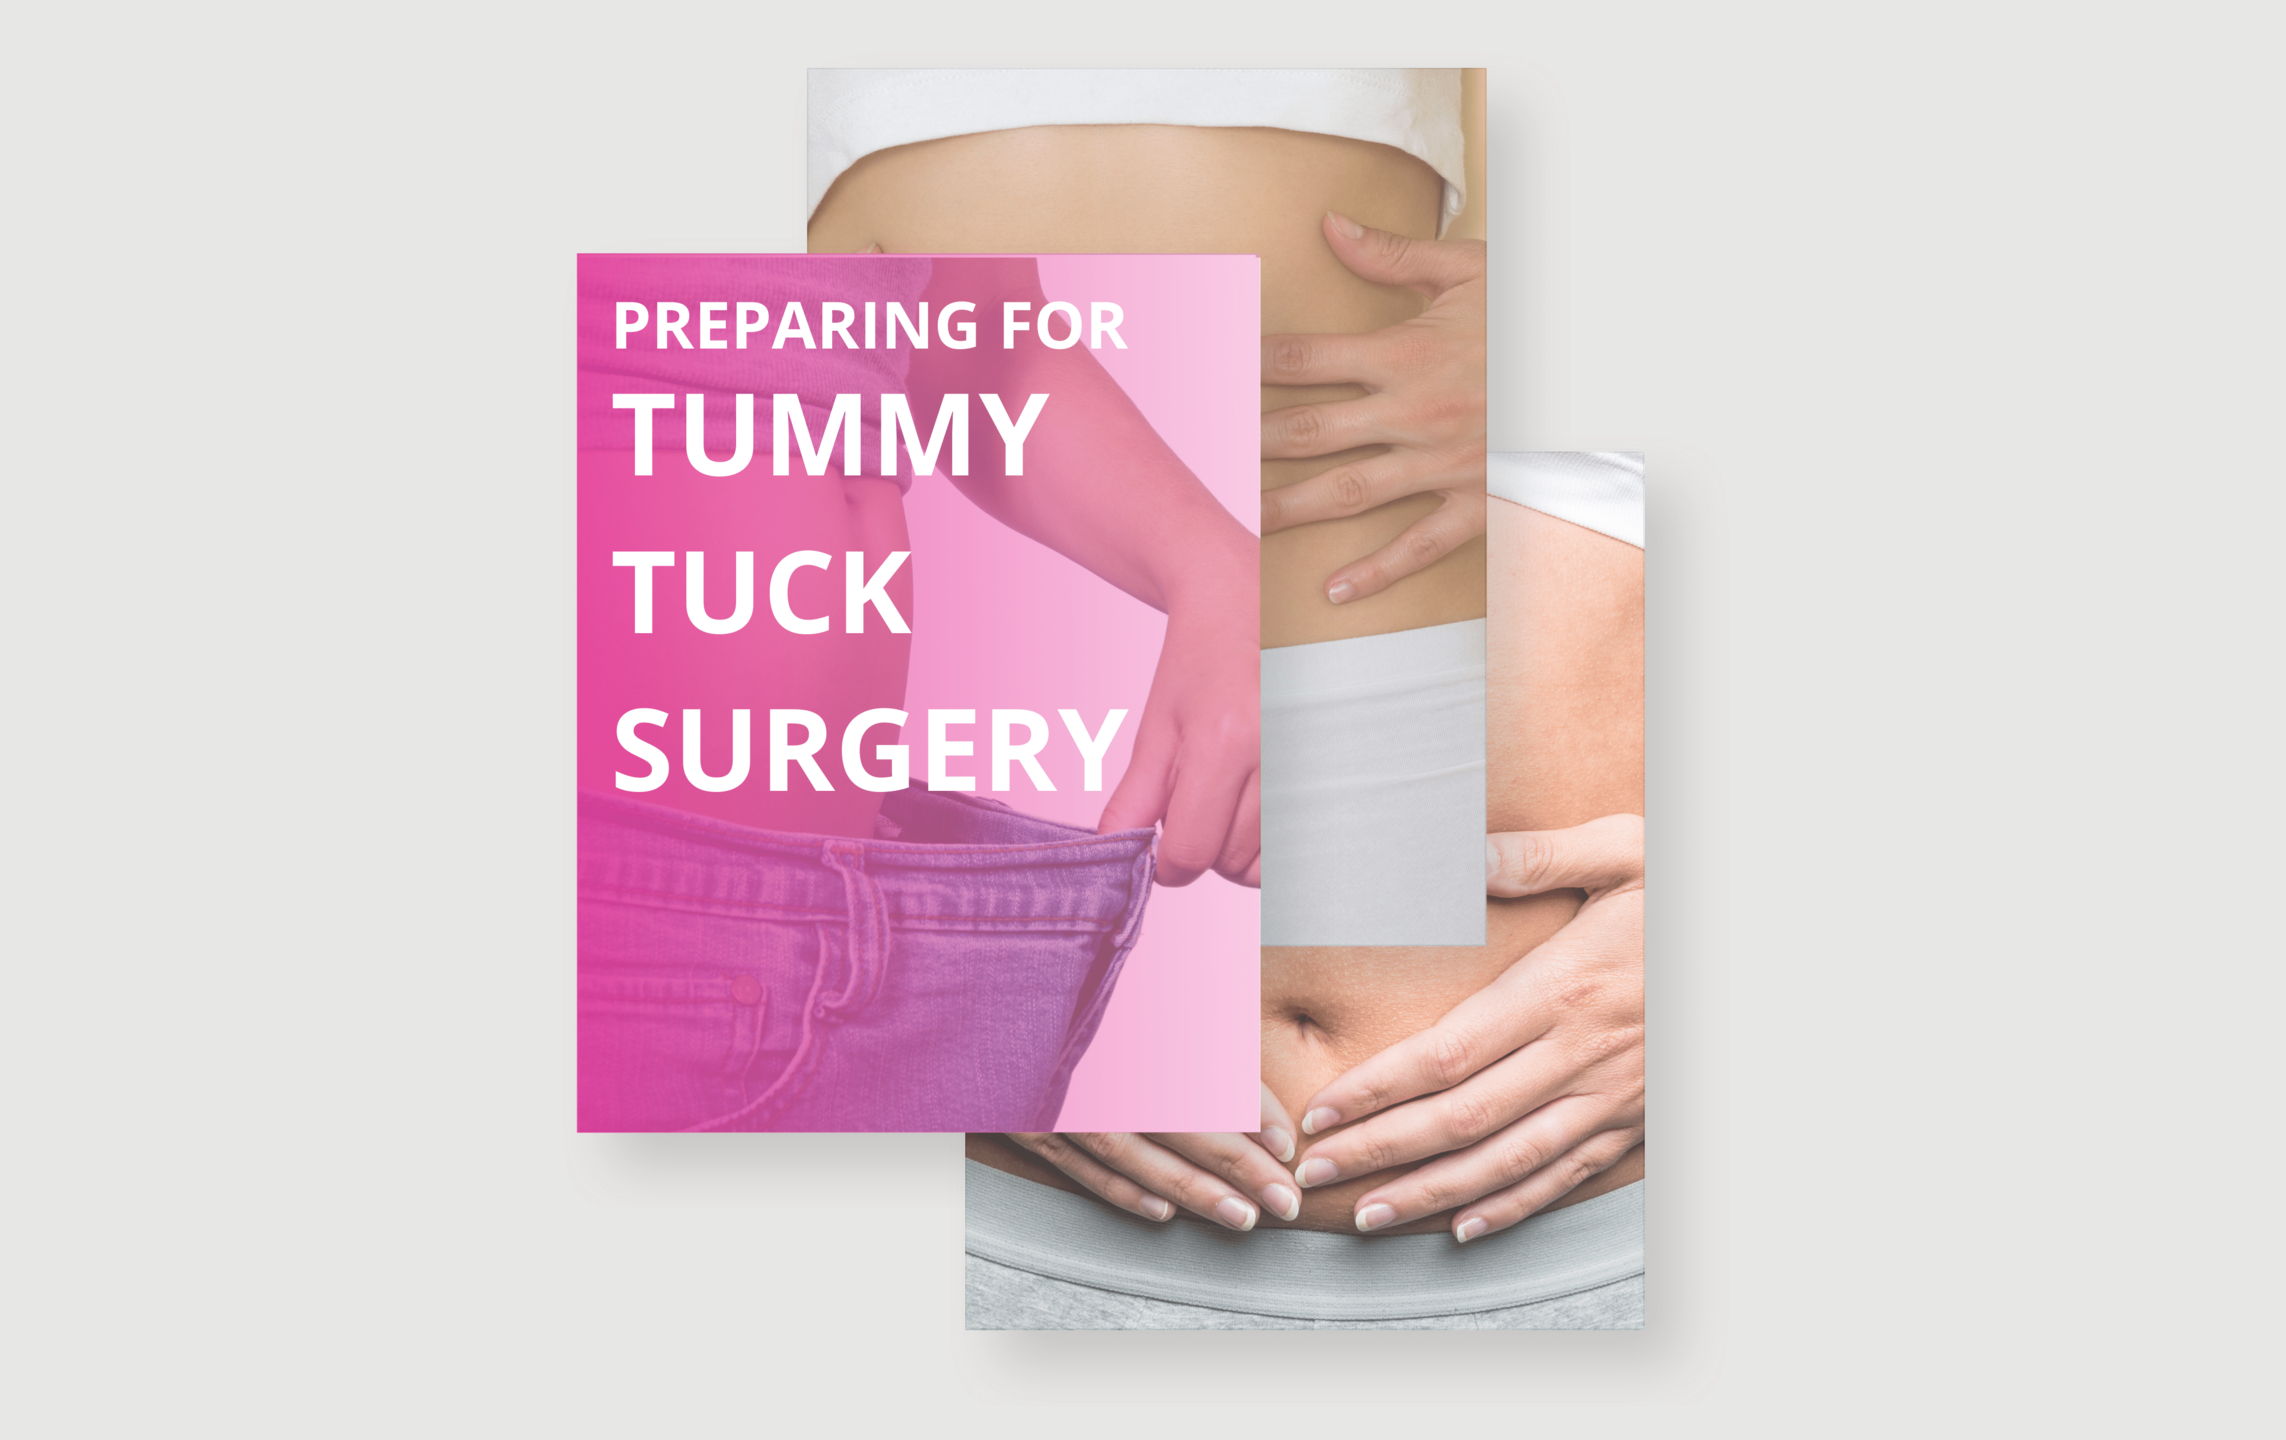 Bonus 1 - Preparing for Tummy Tuck Surgery